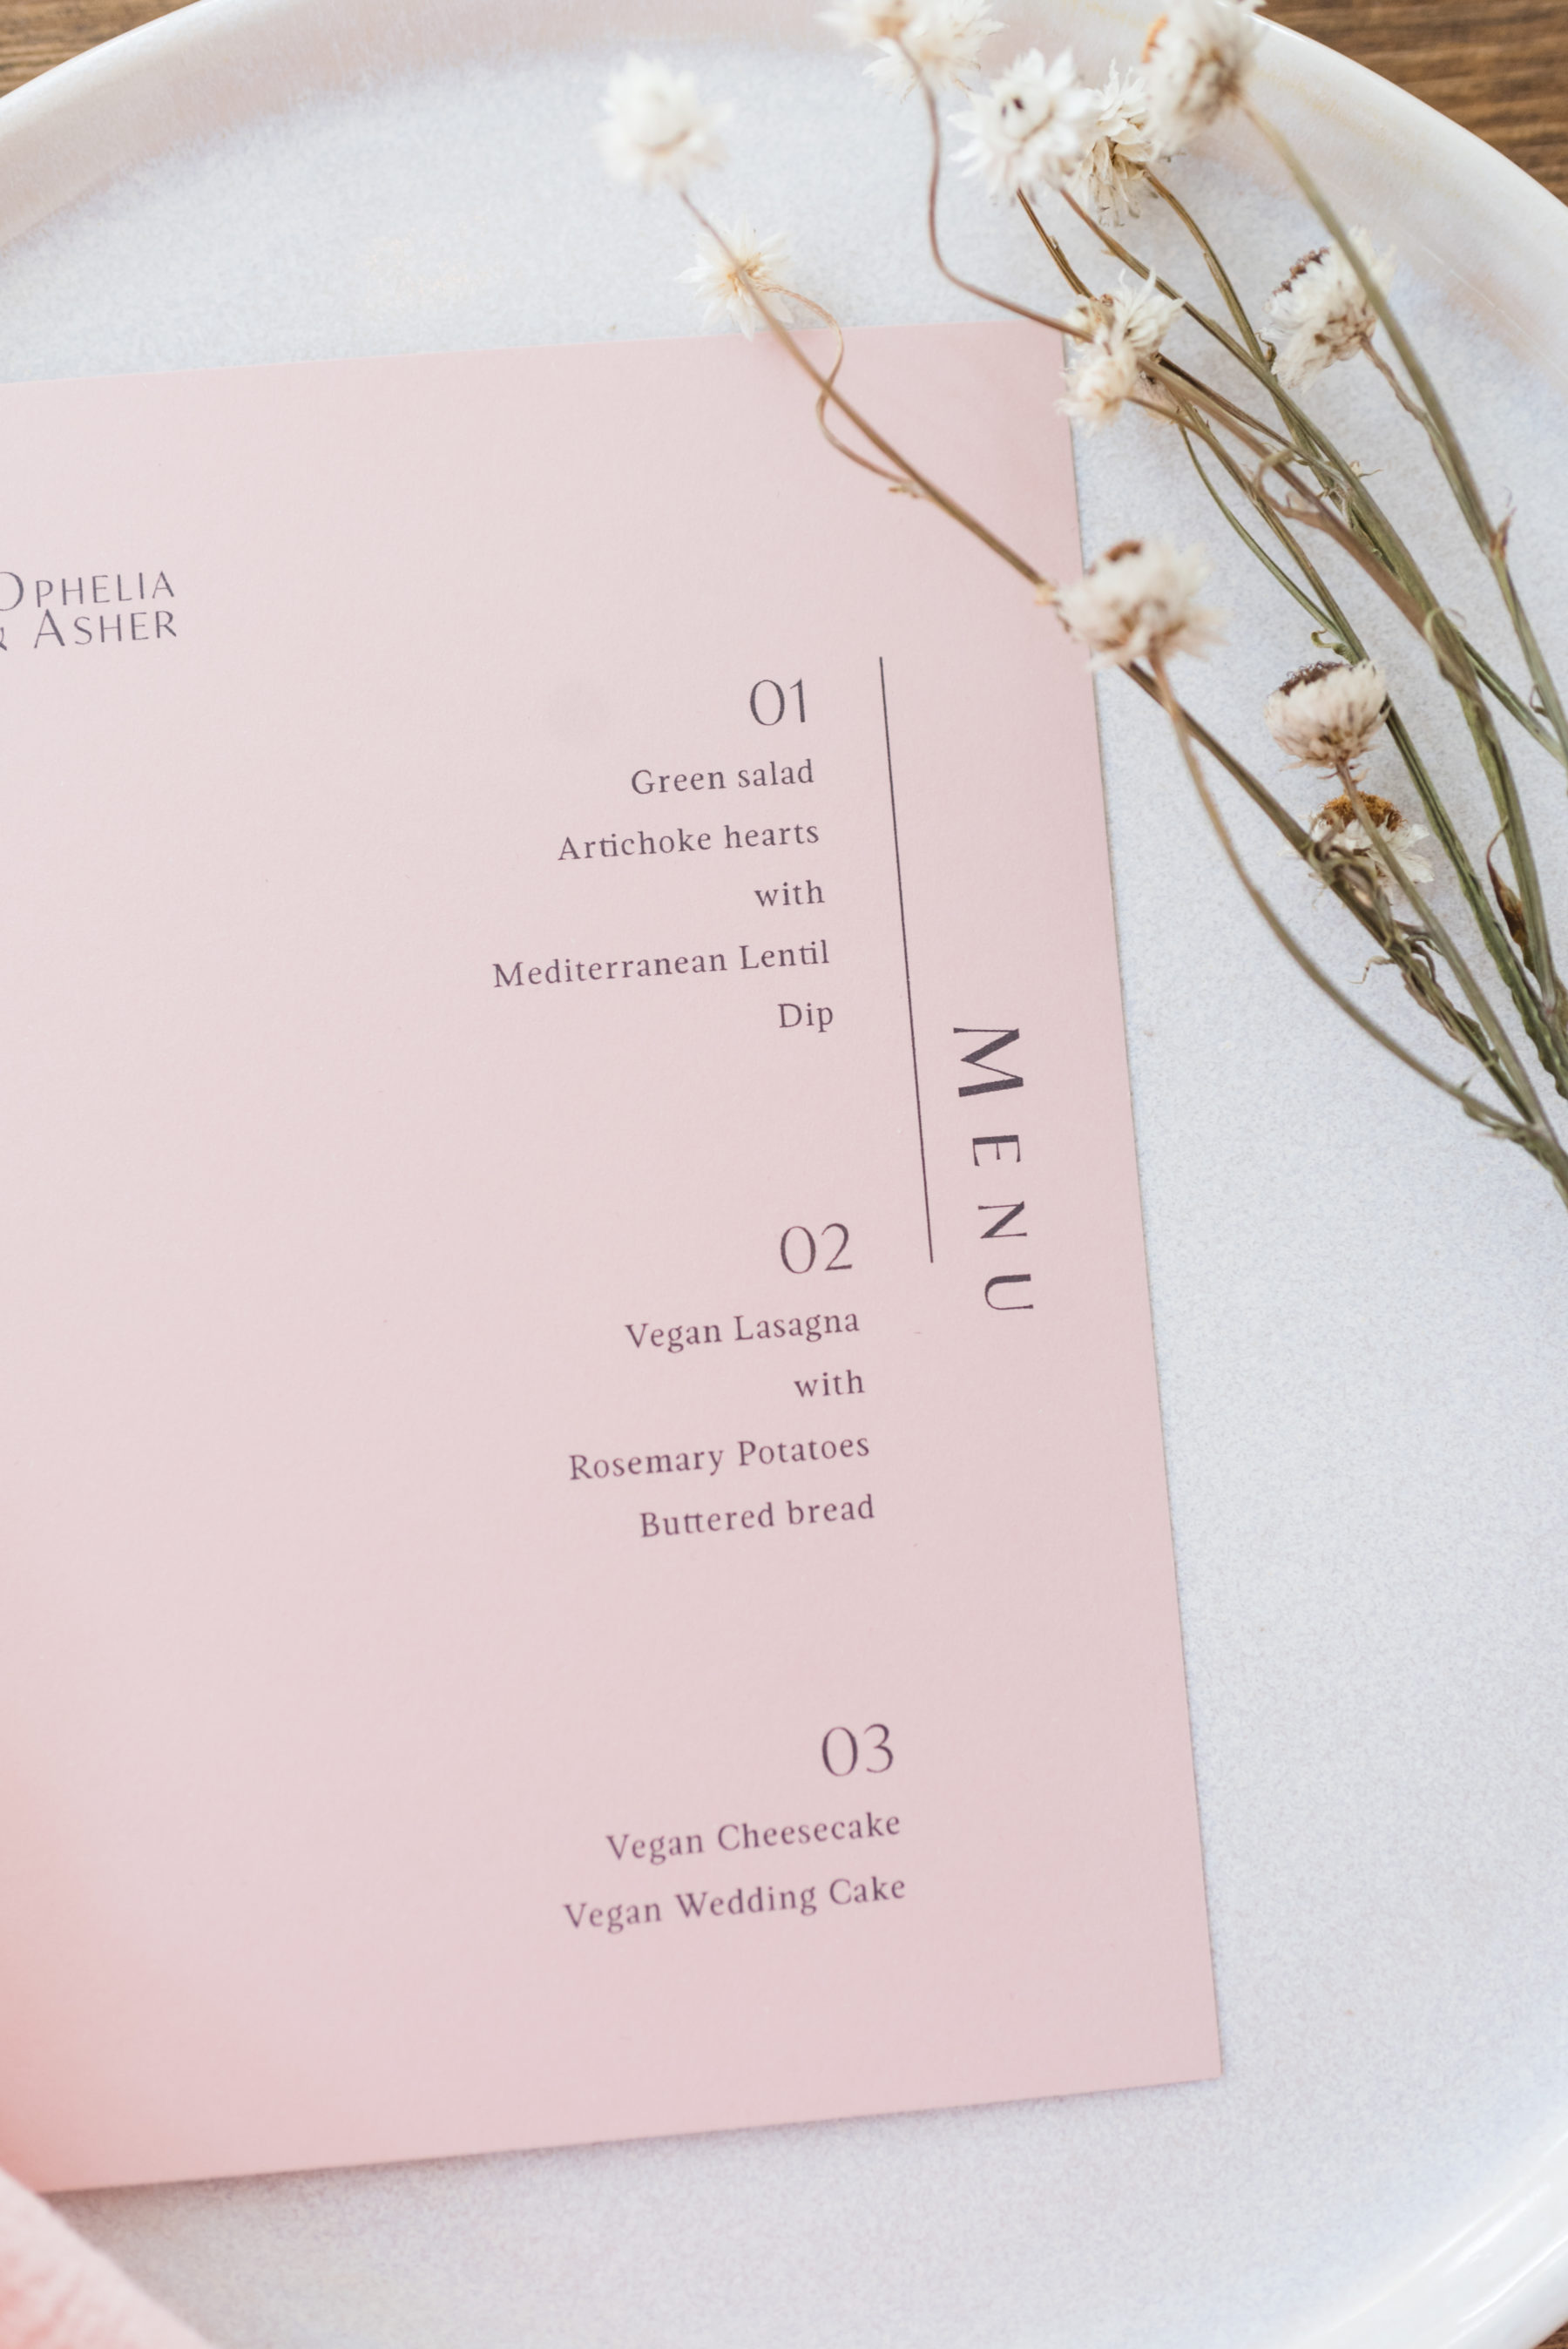 Blush Pink Wedding Stationery Design: Organic Eco-Friendly Wedding Styled Shoot featured on Nashville Bride Guide